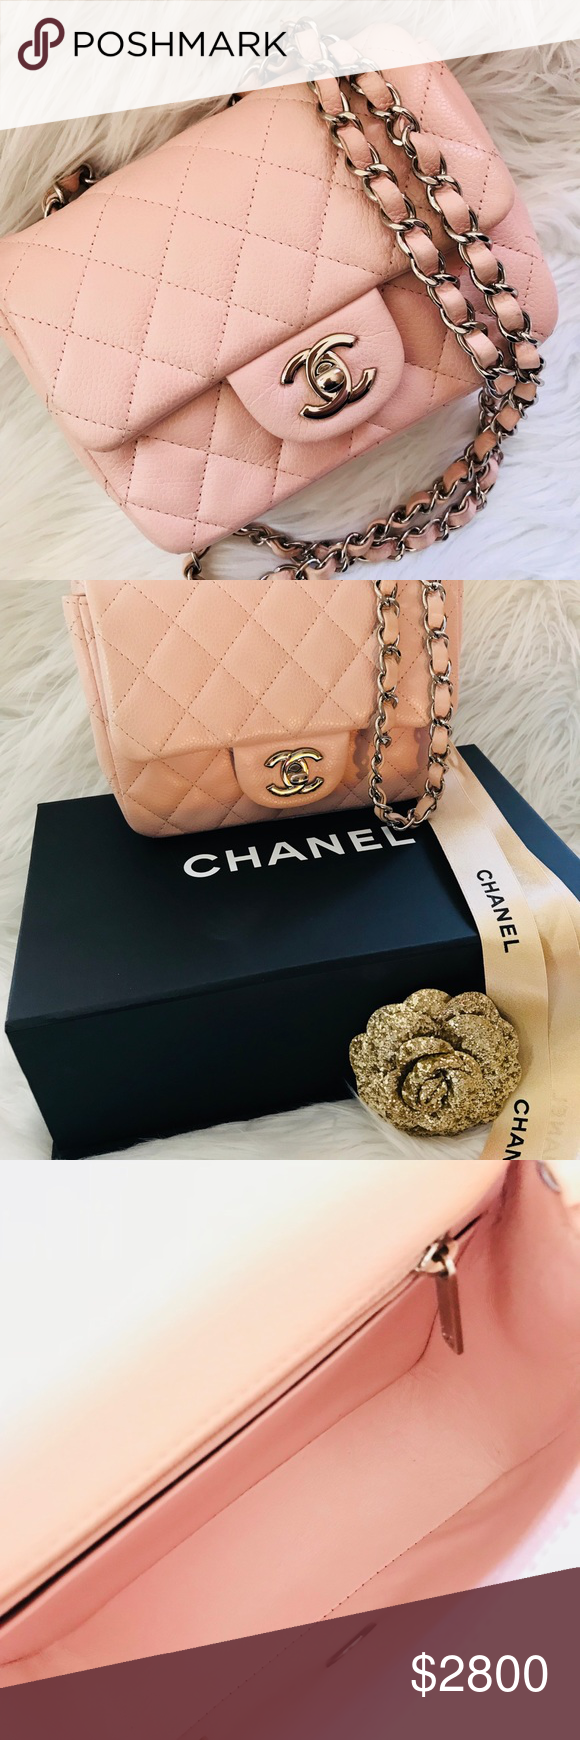 babdce21bdd1 Chanel mini classic flap bag caviar nude pink SHW 100% authentic..in  beautiful condition no any major flaws..on the bottom near to the corner  small part of ...